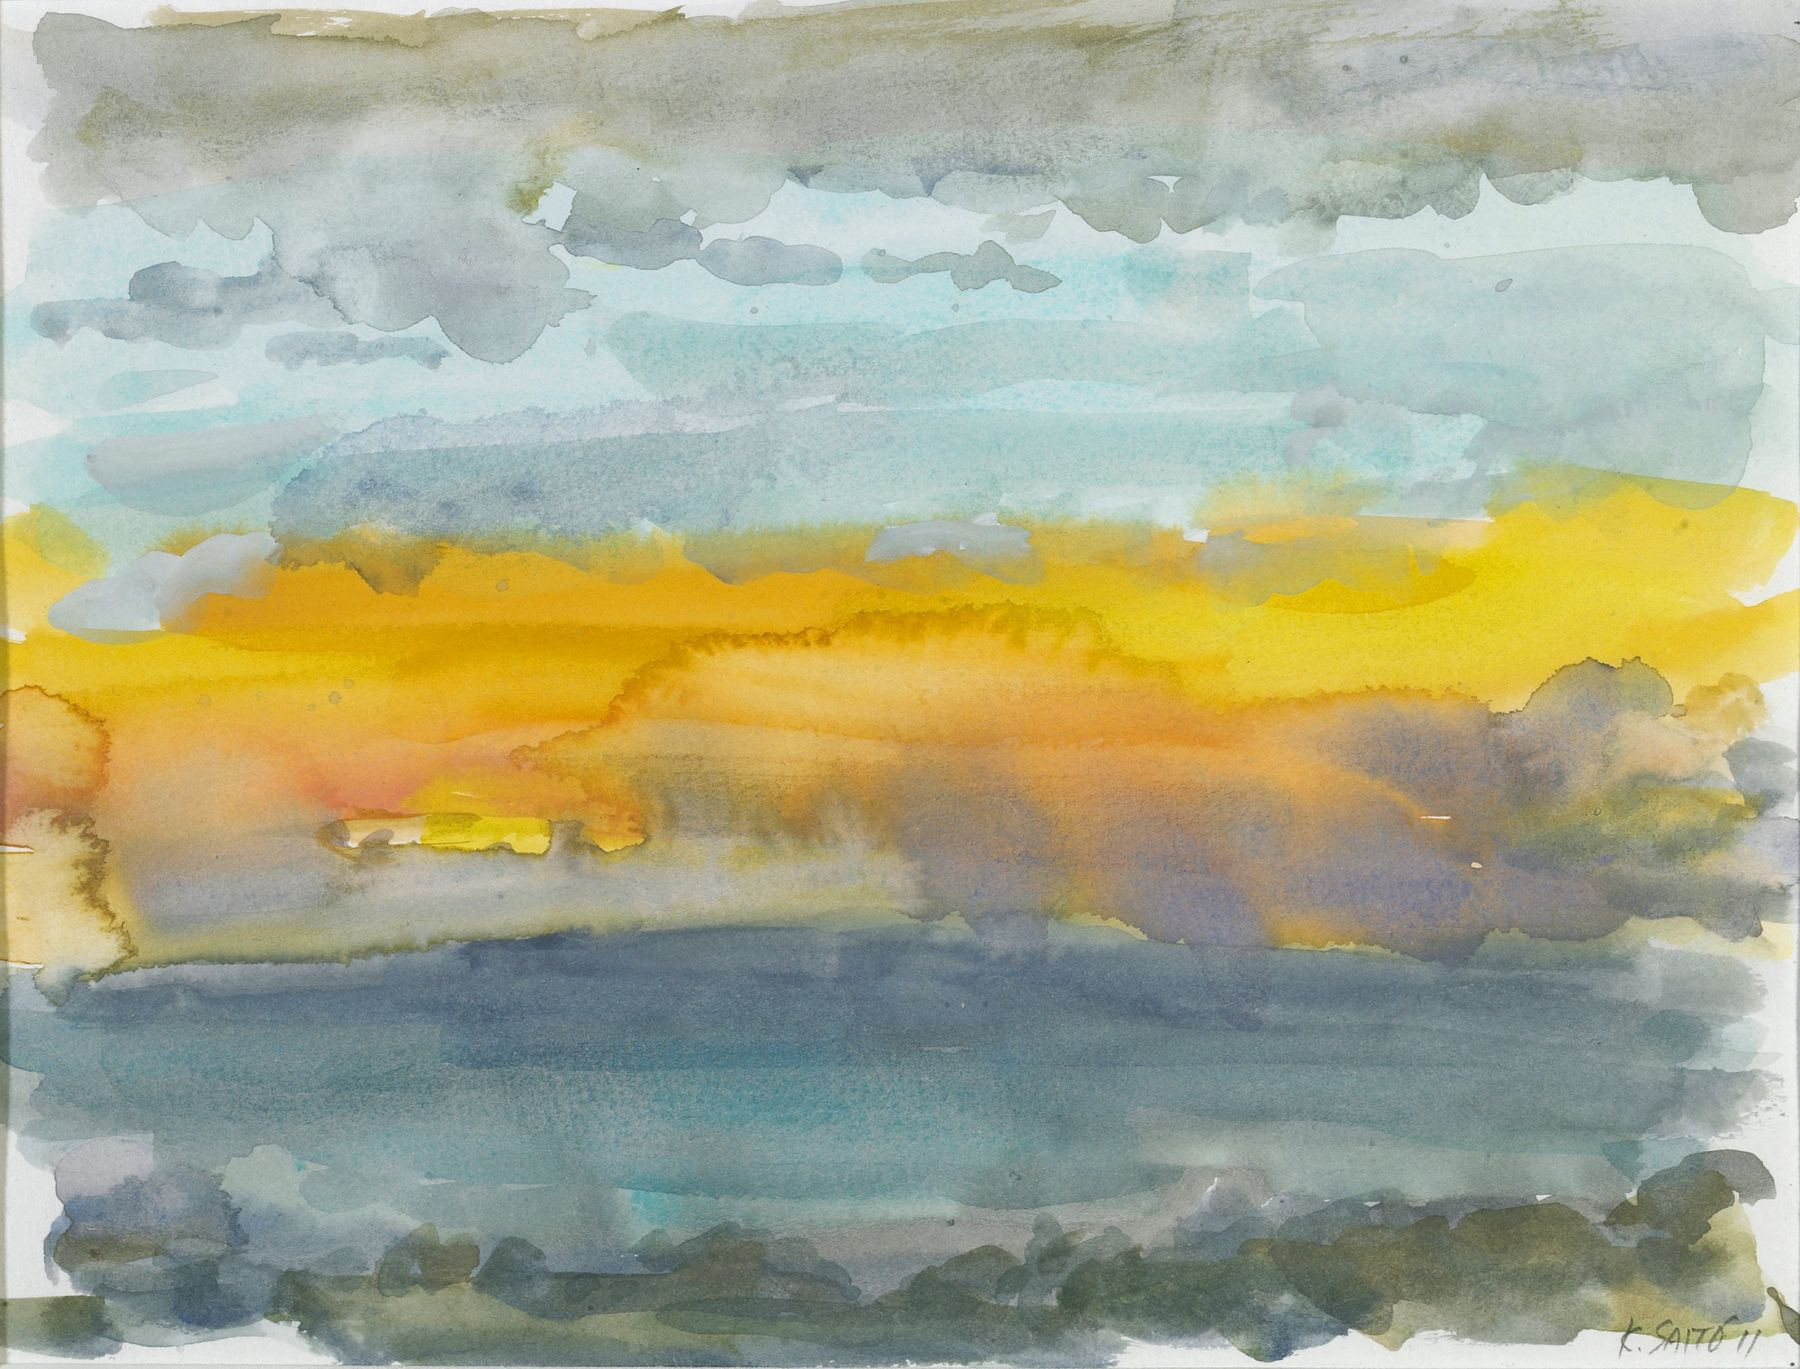 Kikuo Saito, Gotland #59, 2011    Watercolor on paper 6 x 8 3/4 inches